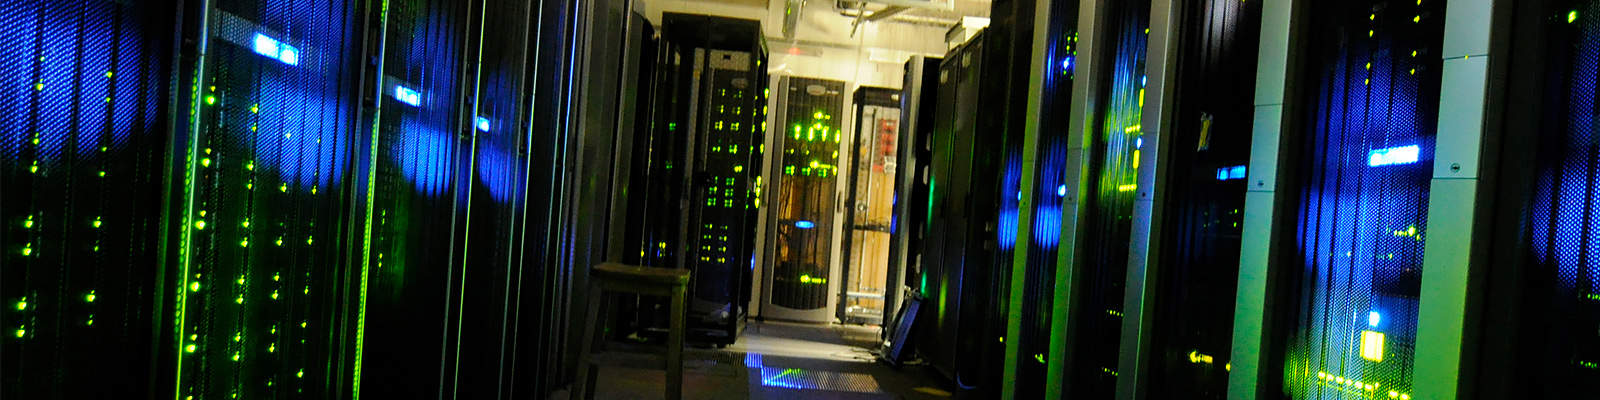 A rack of computer servers